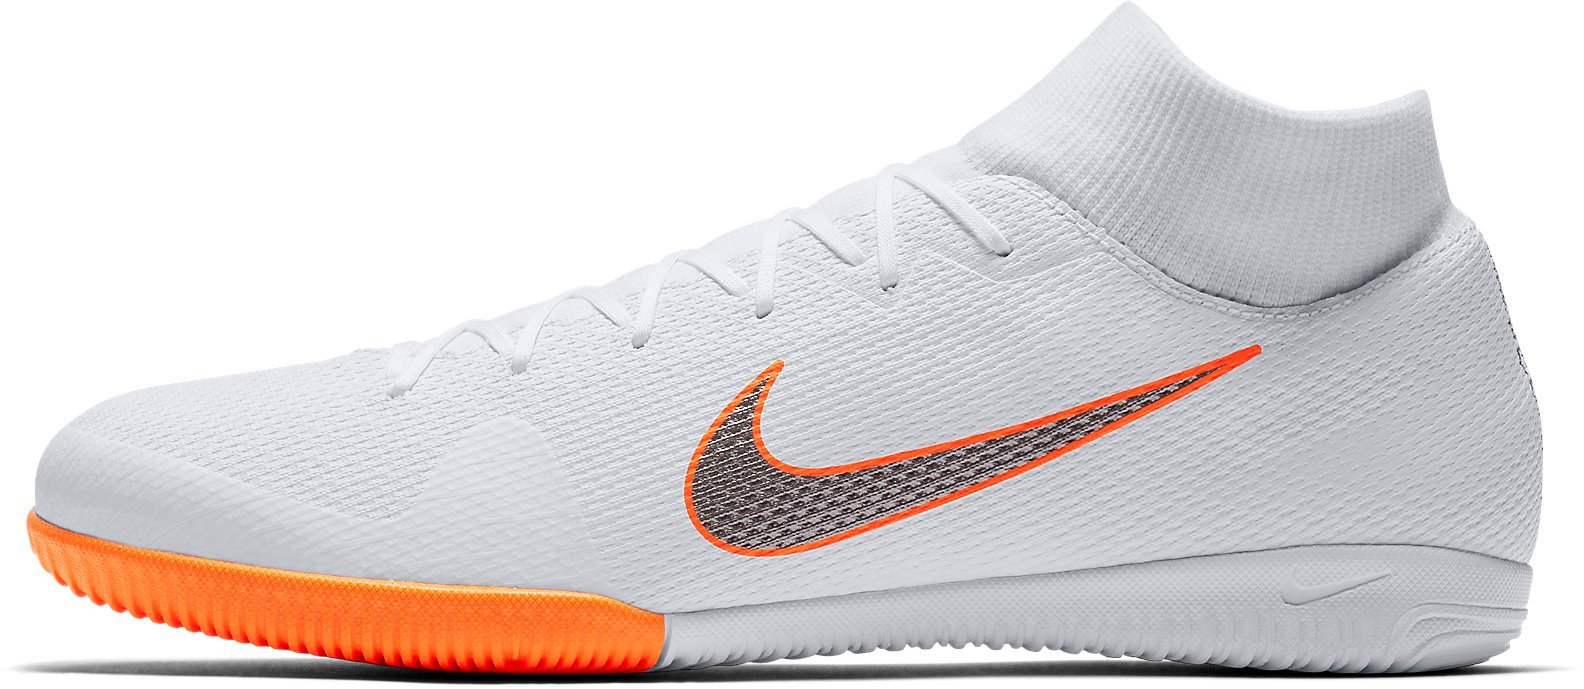 Nike Superflyx 6 Academy IC, Chaussures